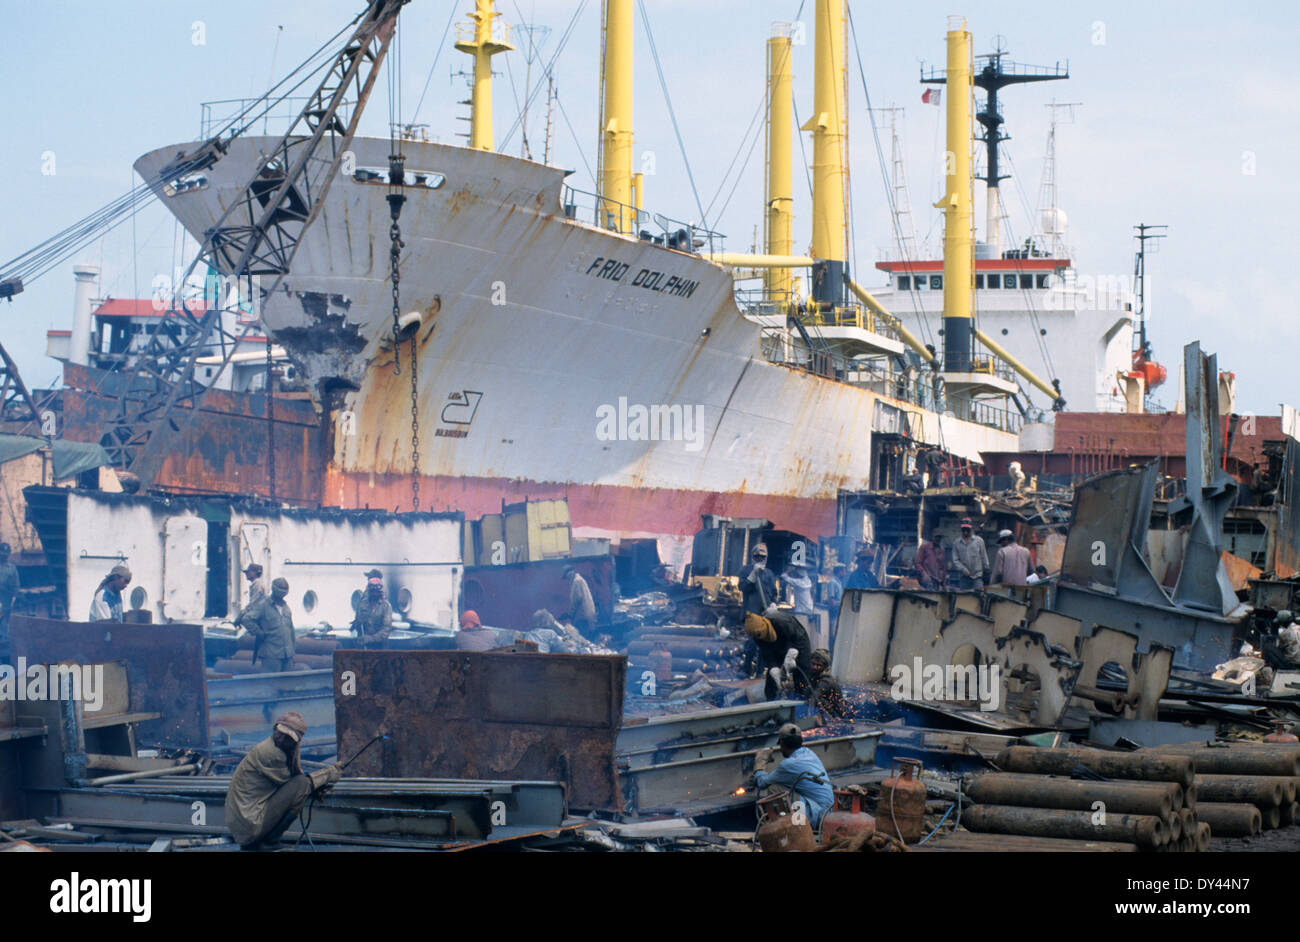 Cargo Ships Wrecking Stock Photos & Cargo Ships Wrecking Stock